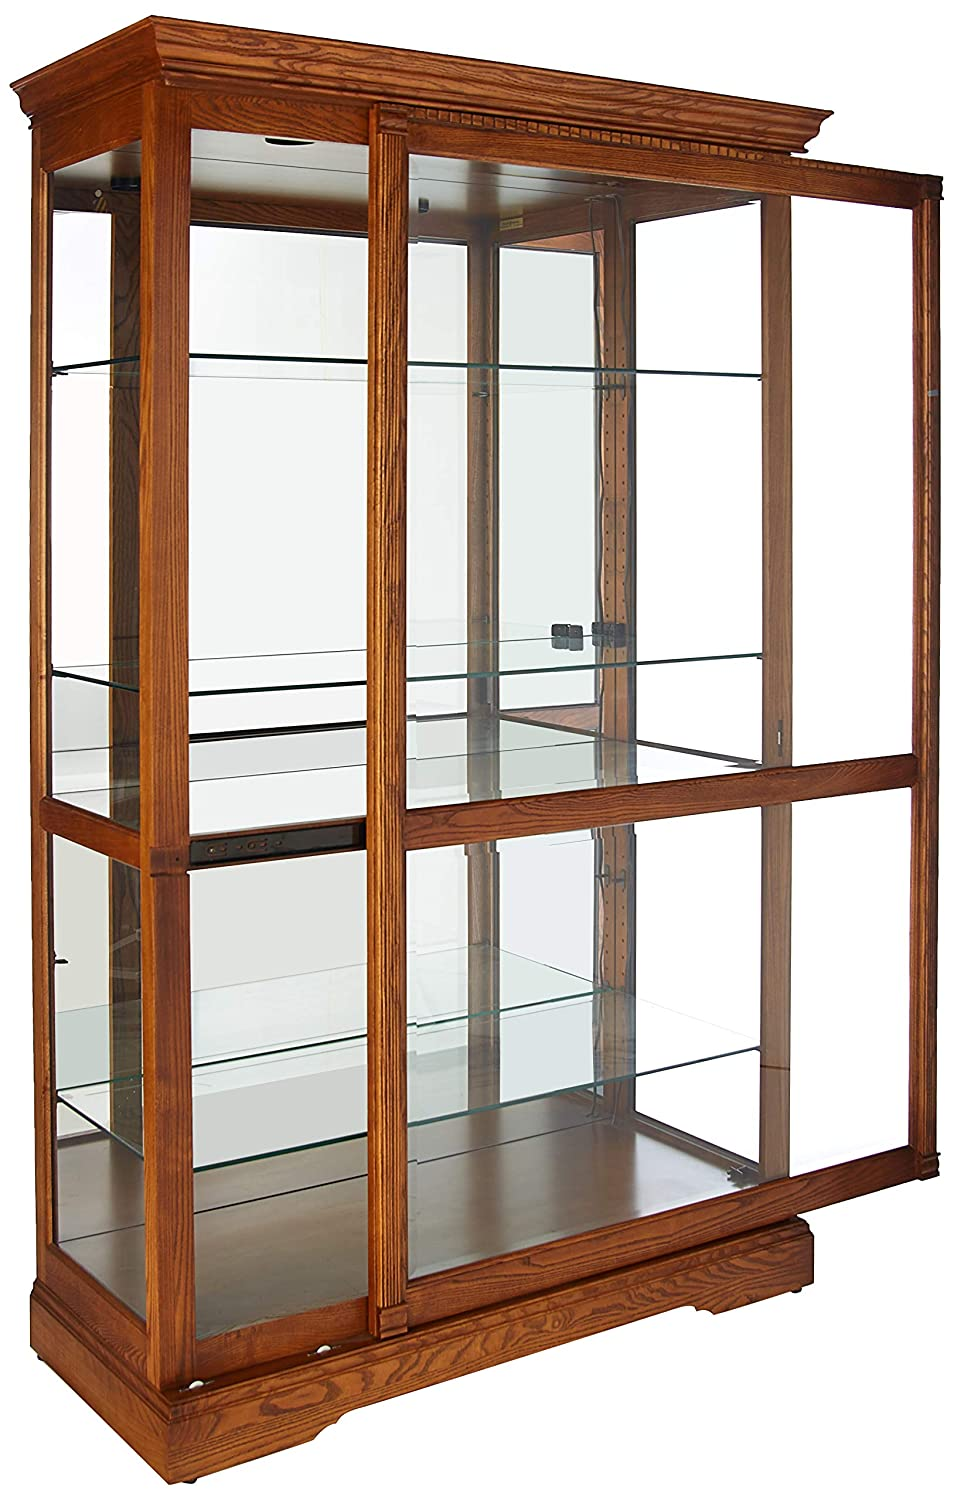 Amazon.com: Howard Miller 680 237 Parkview Curio Cabinet By: Kitchen U0026  Dining